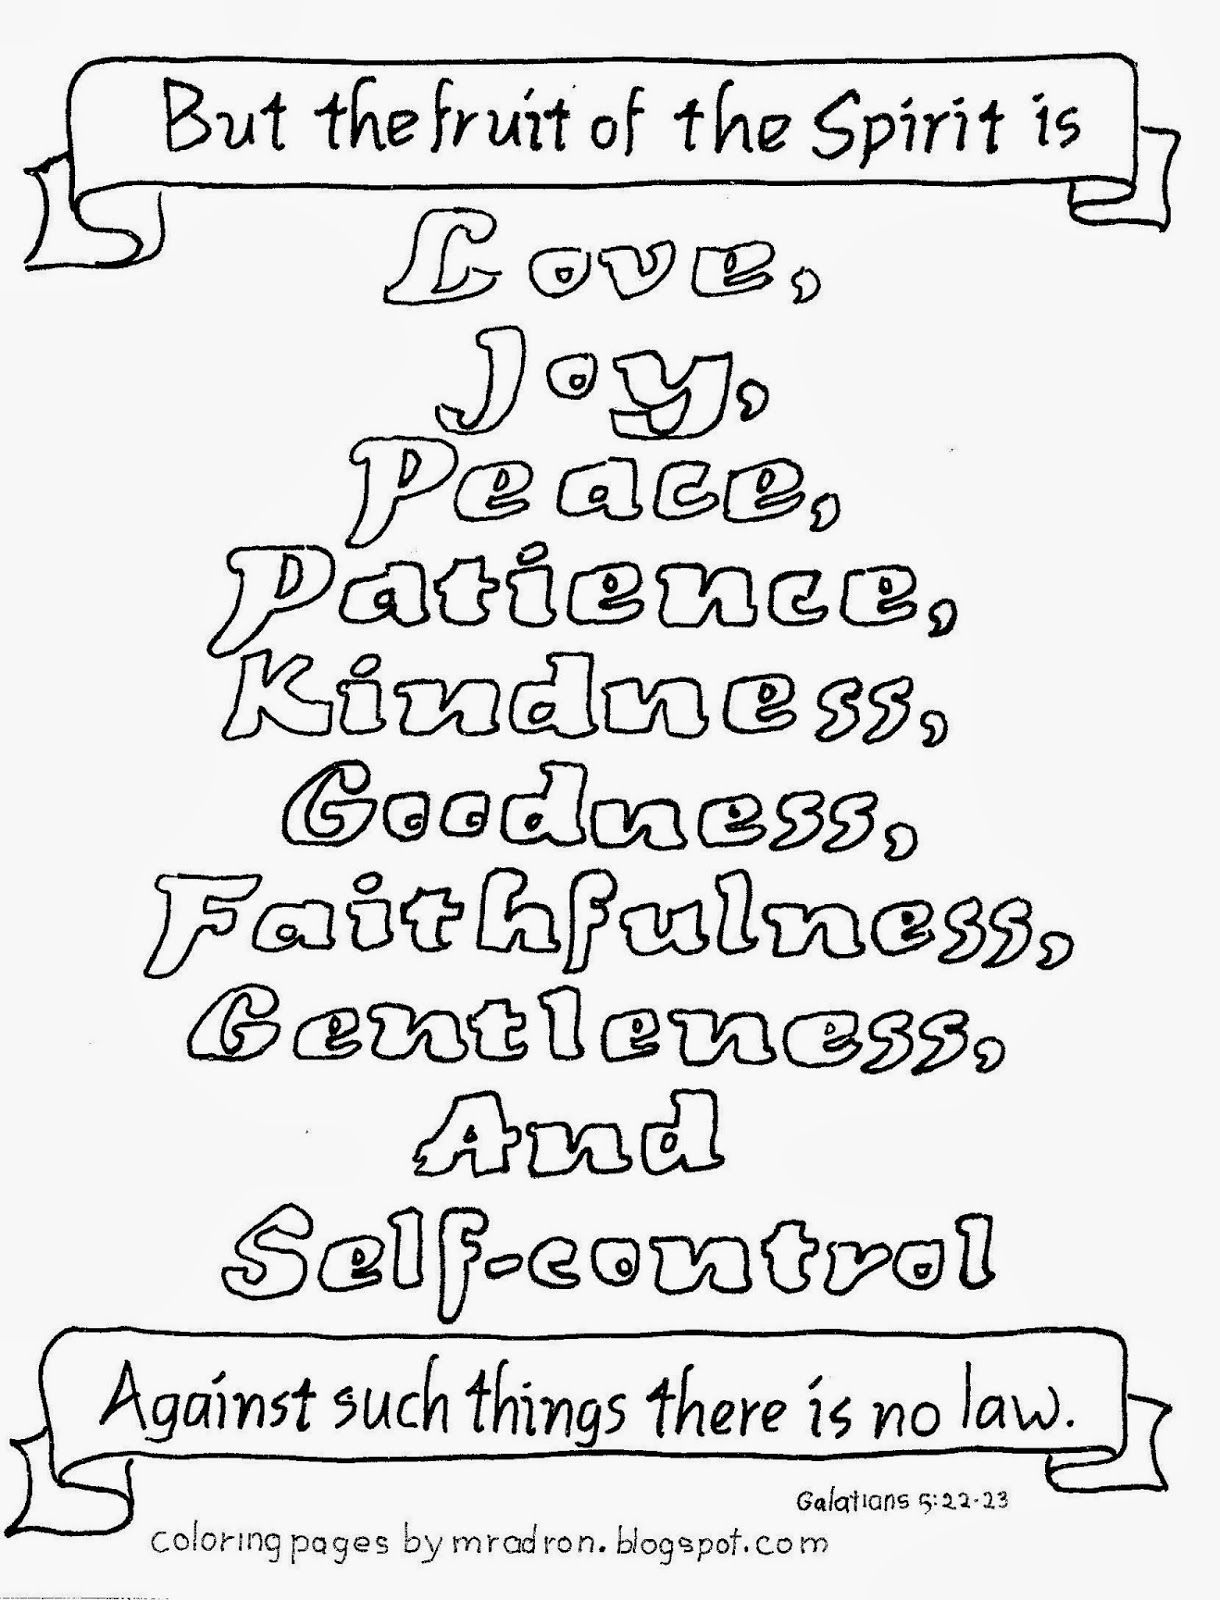 Coloring pages for kids by mr adron free fruit of the spirit coloring page galatians